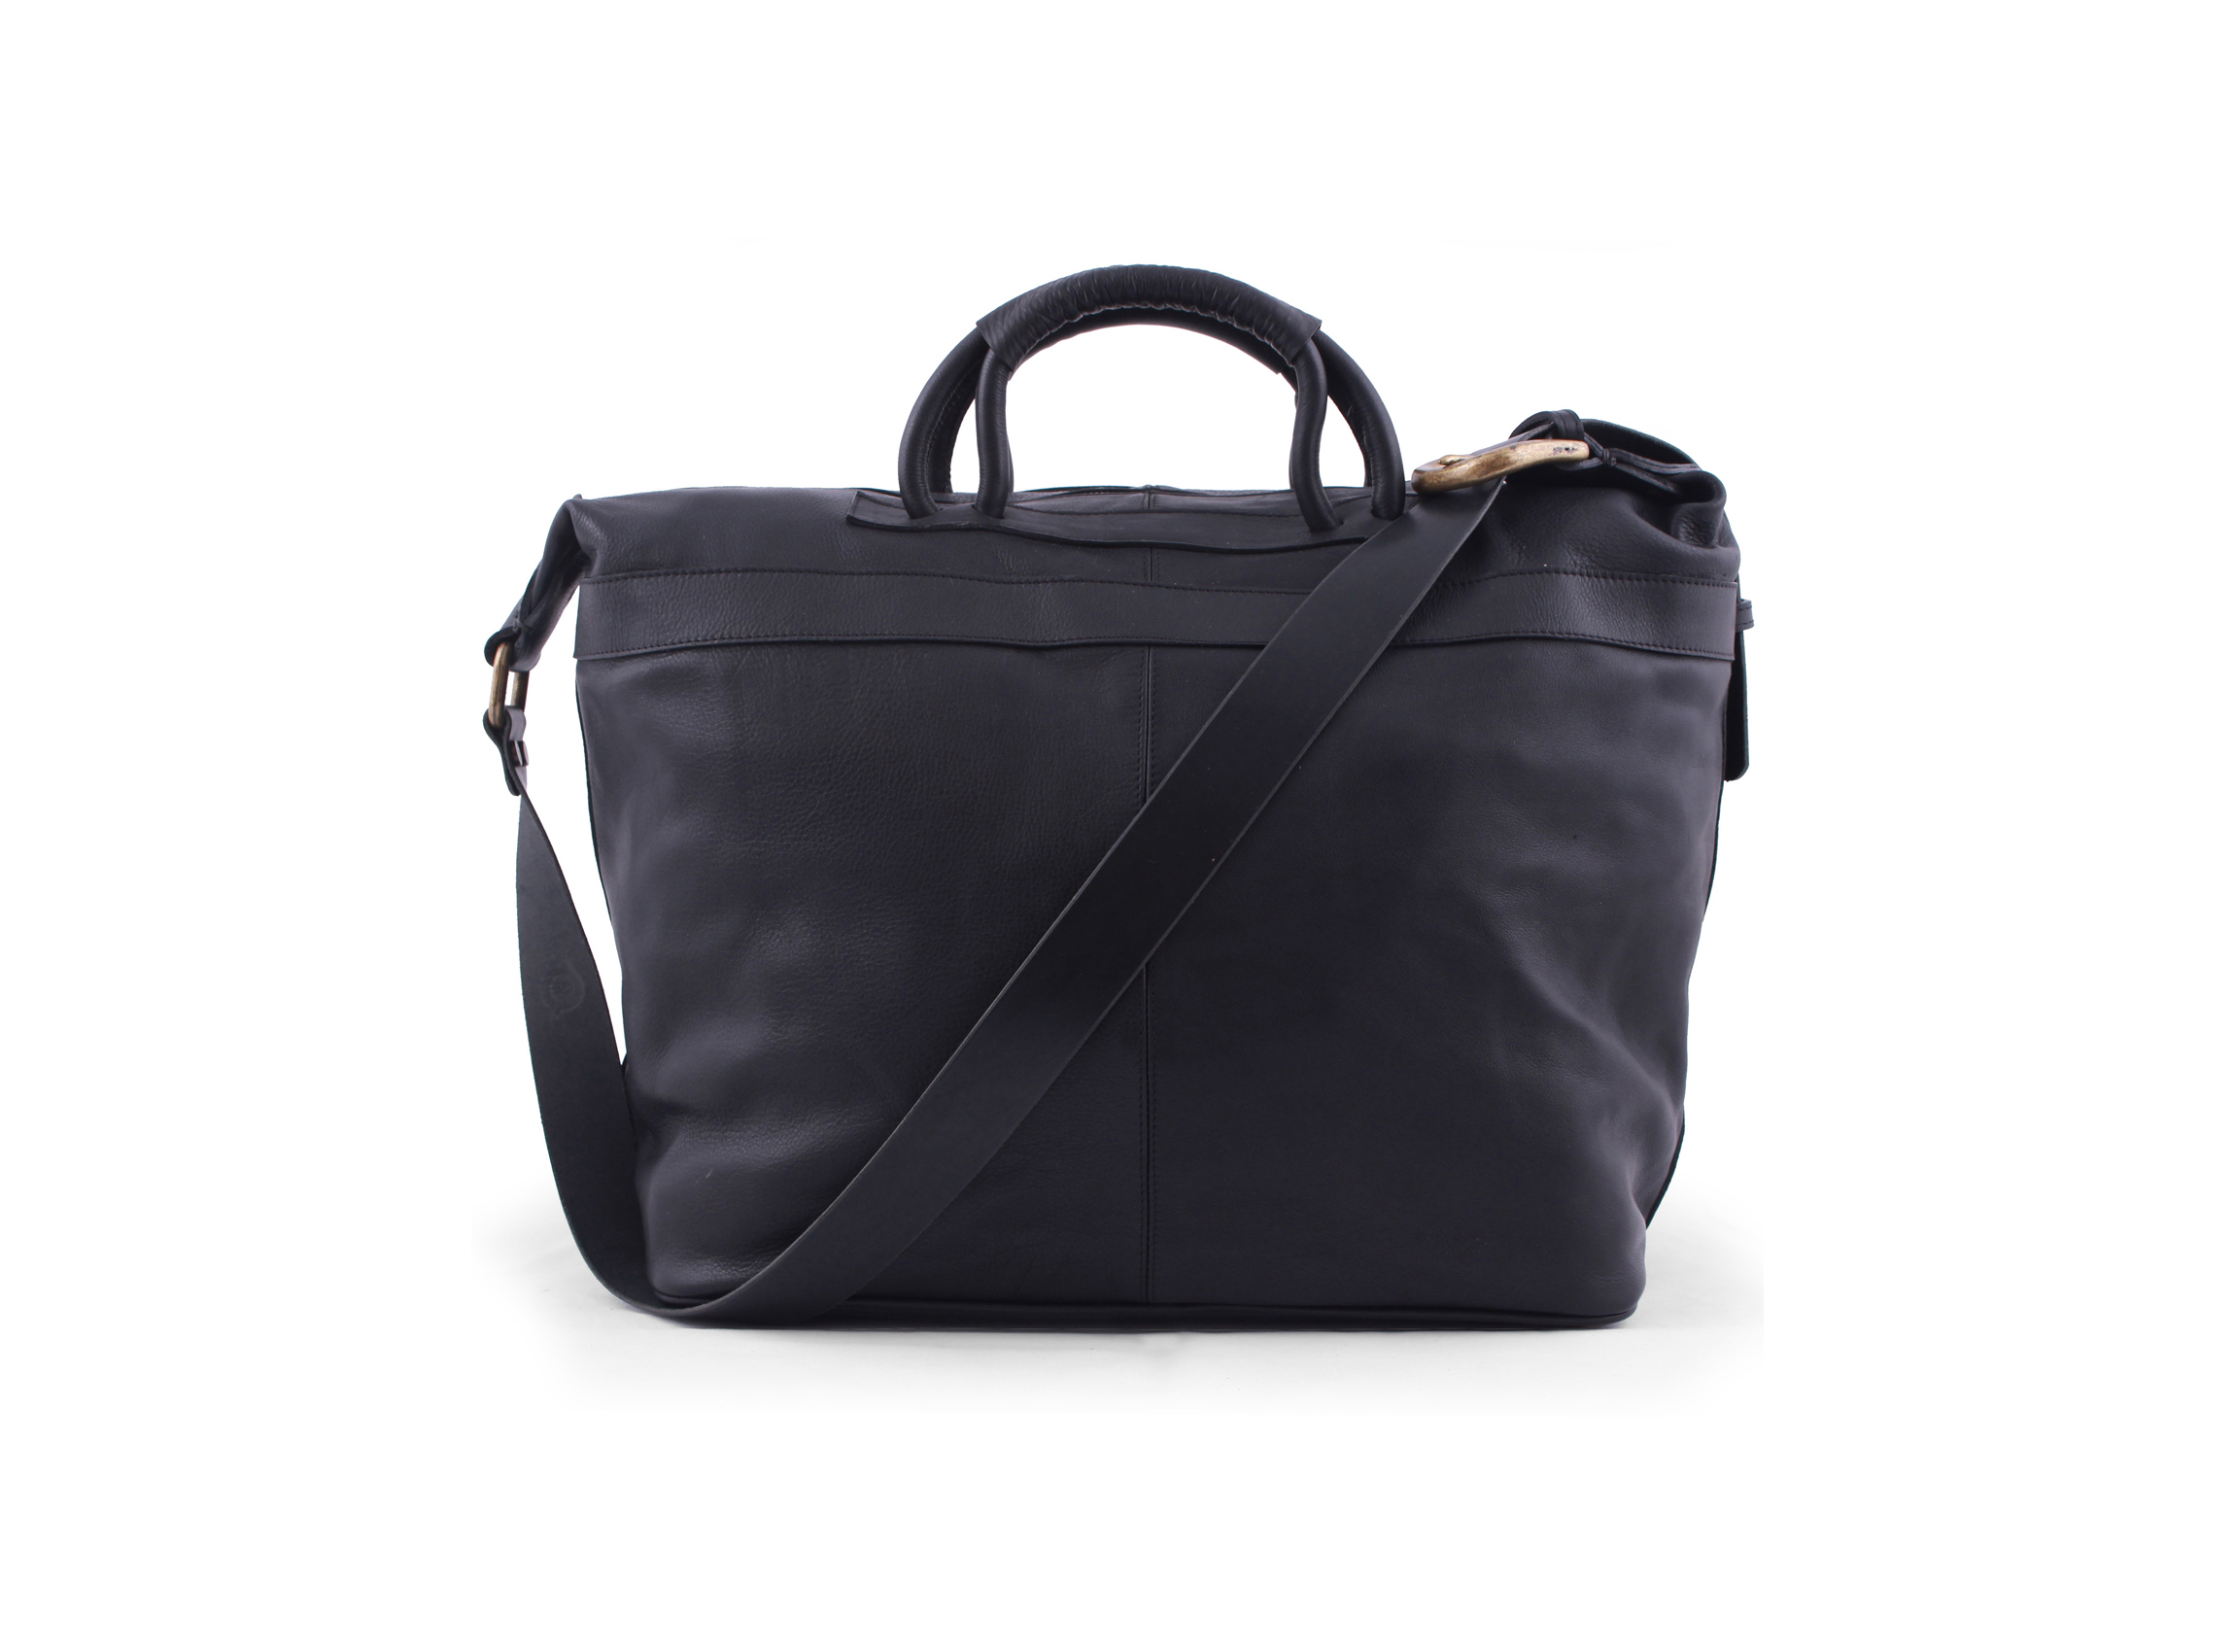 San Telmo Puro Suela Leather Weekender Bag